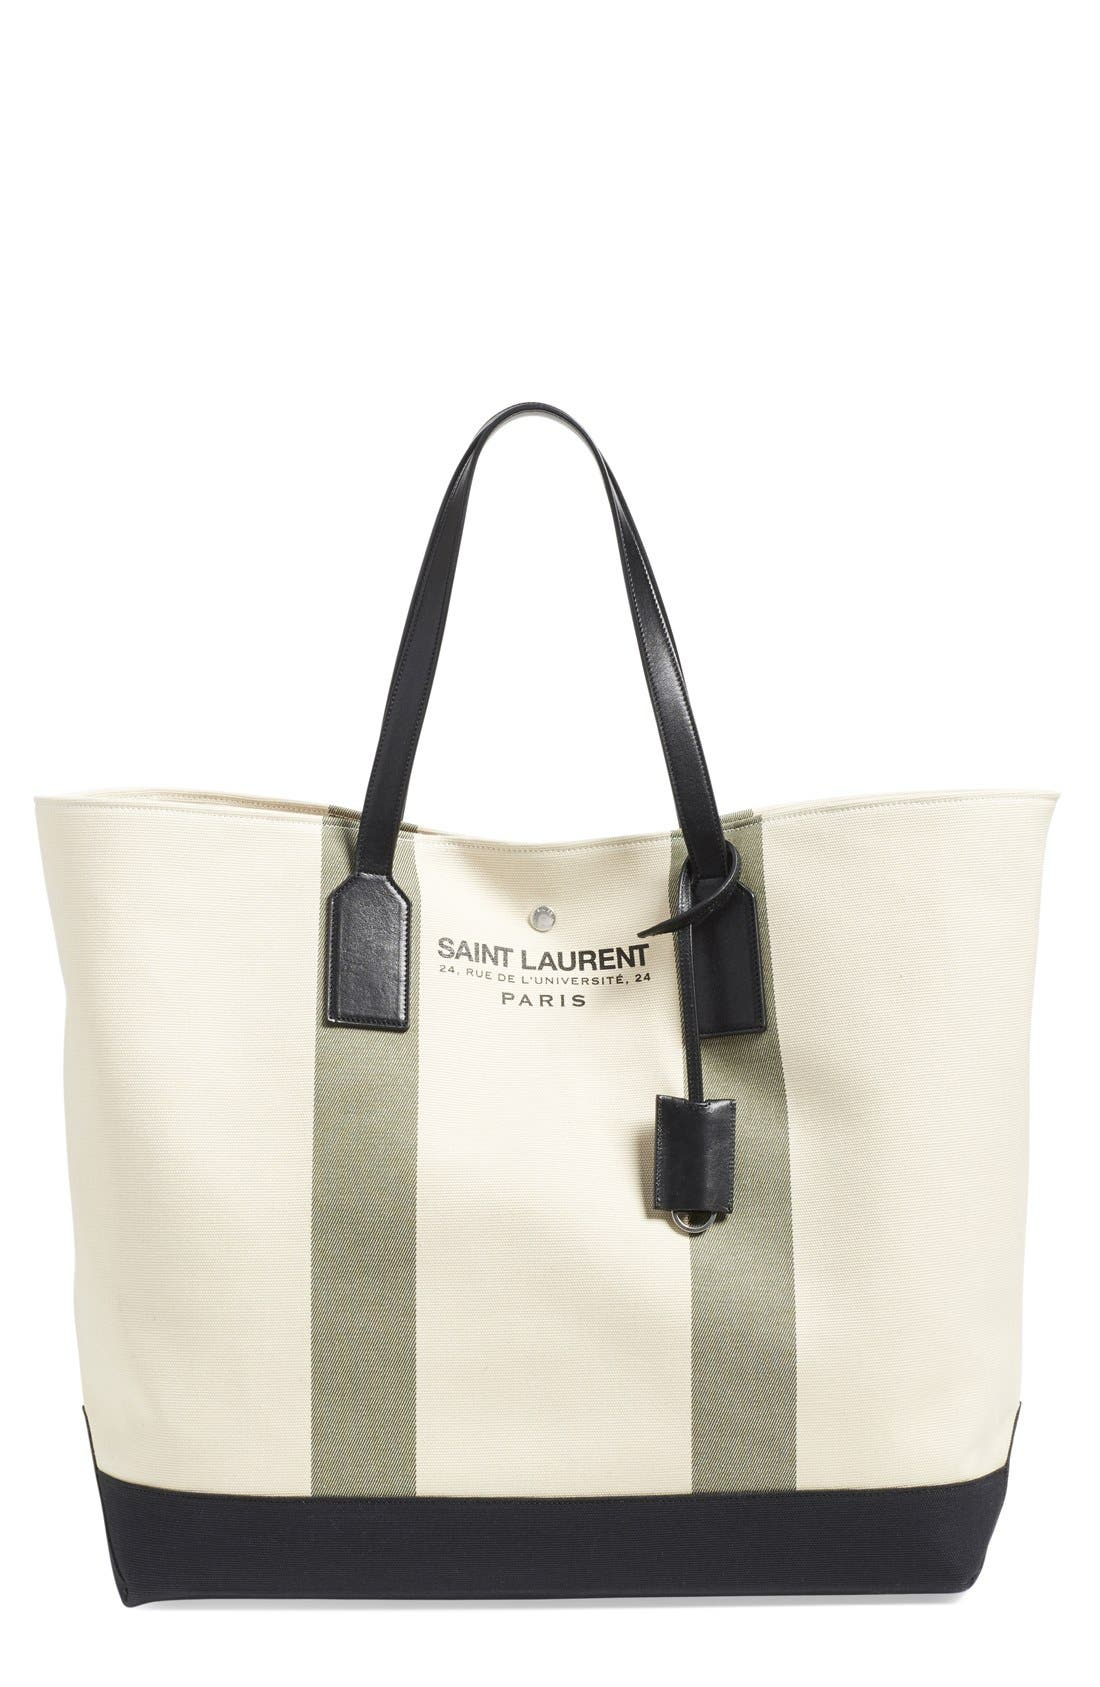 Alternate Image 1 Selected - Saint Laurent 'Beach' Canvas Tote